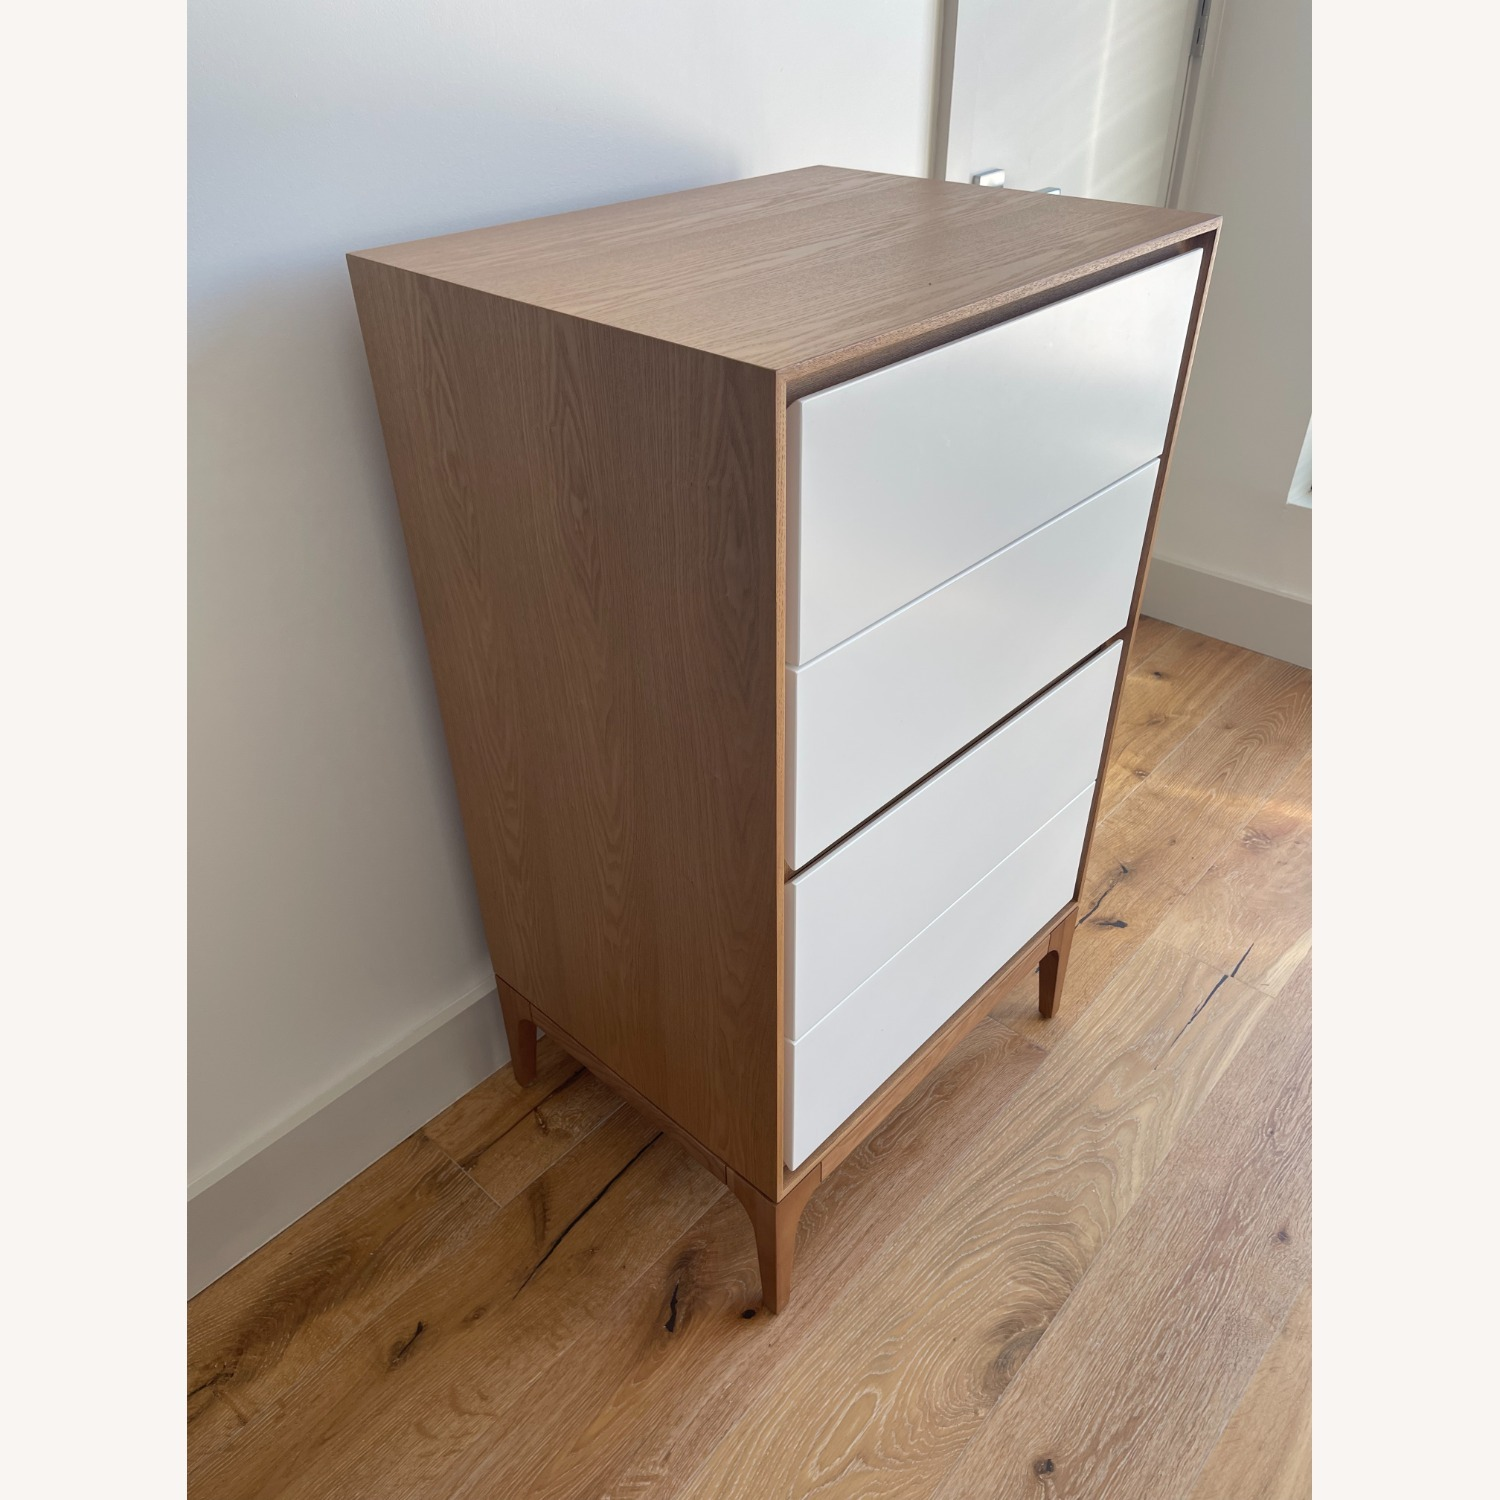 Rove Concepts 2X Wooden Dressers with White Drawers - image-3